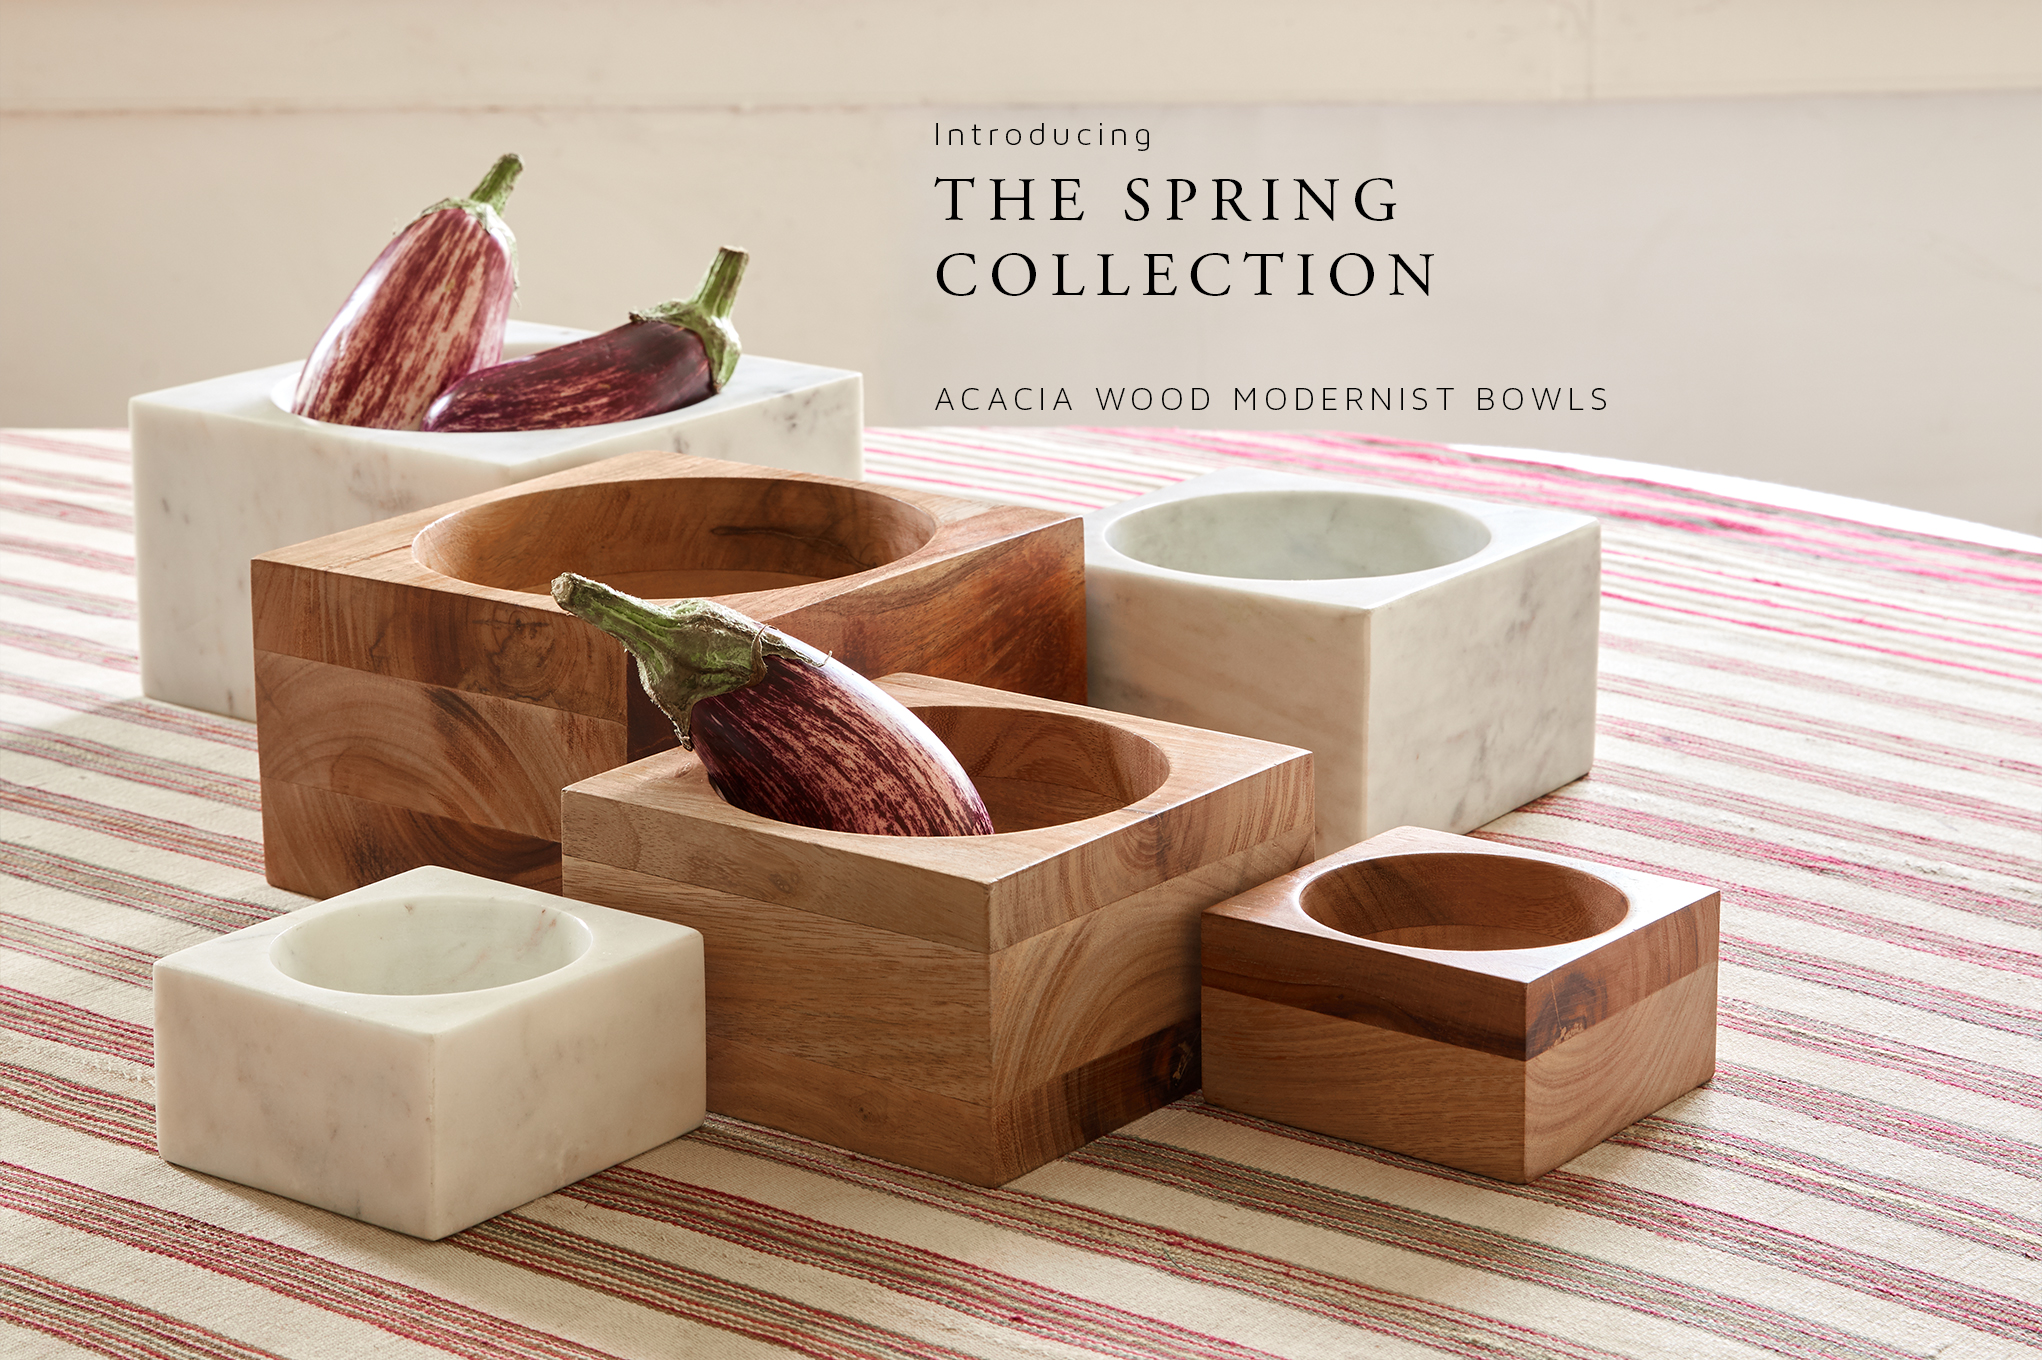 Introducing the Spring Collection: Acacia Wood Modernist Bowl